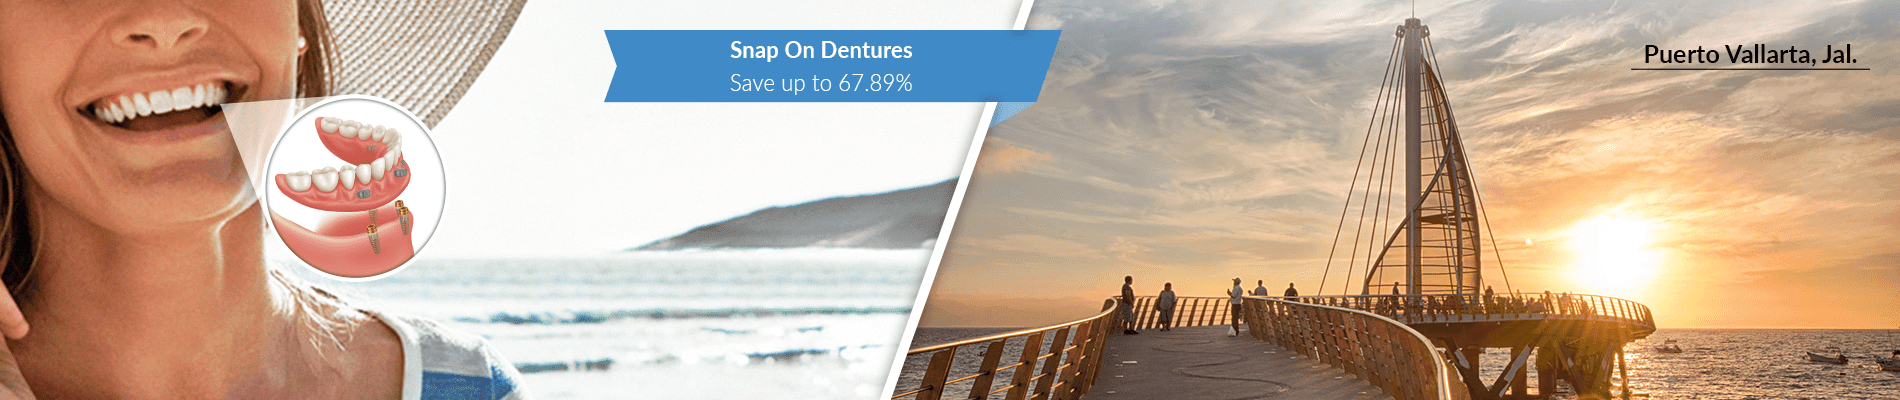 High Quality Dental Clinics At Low Prices Dental Tourism